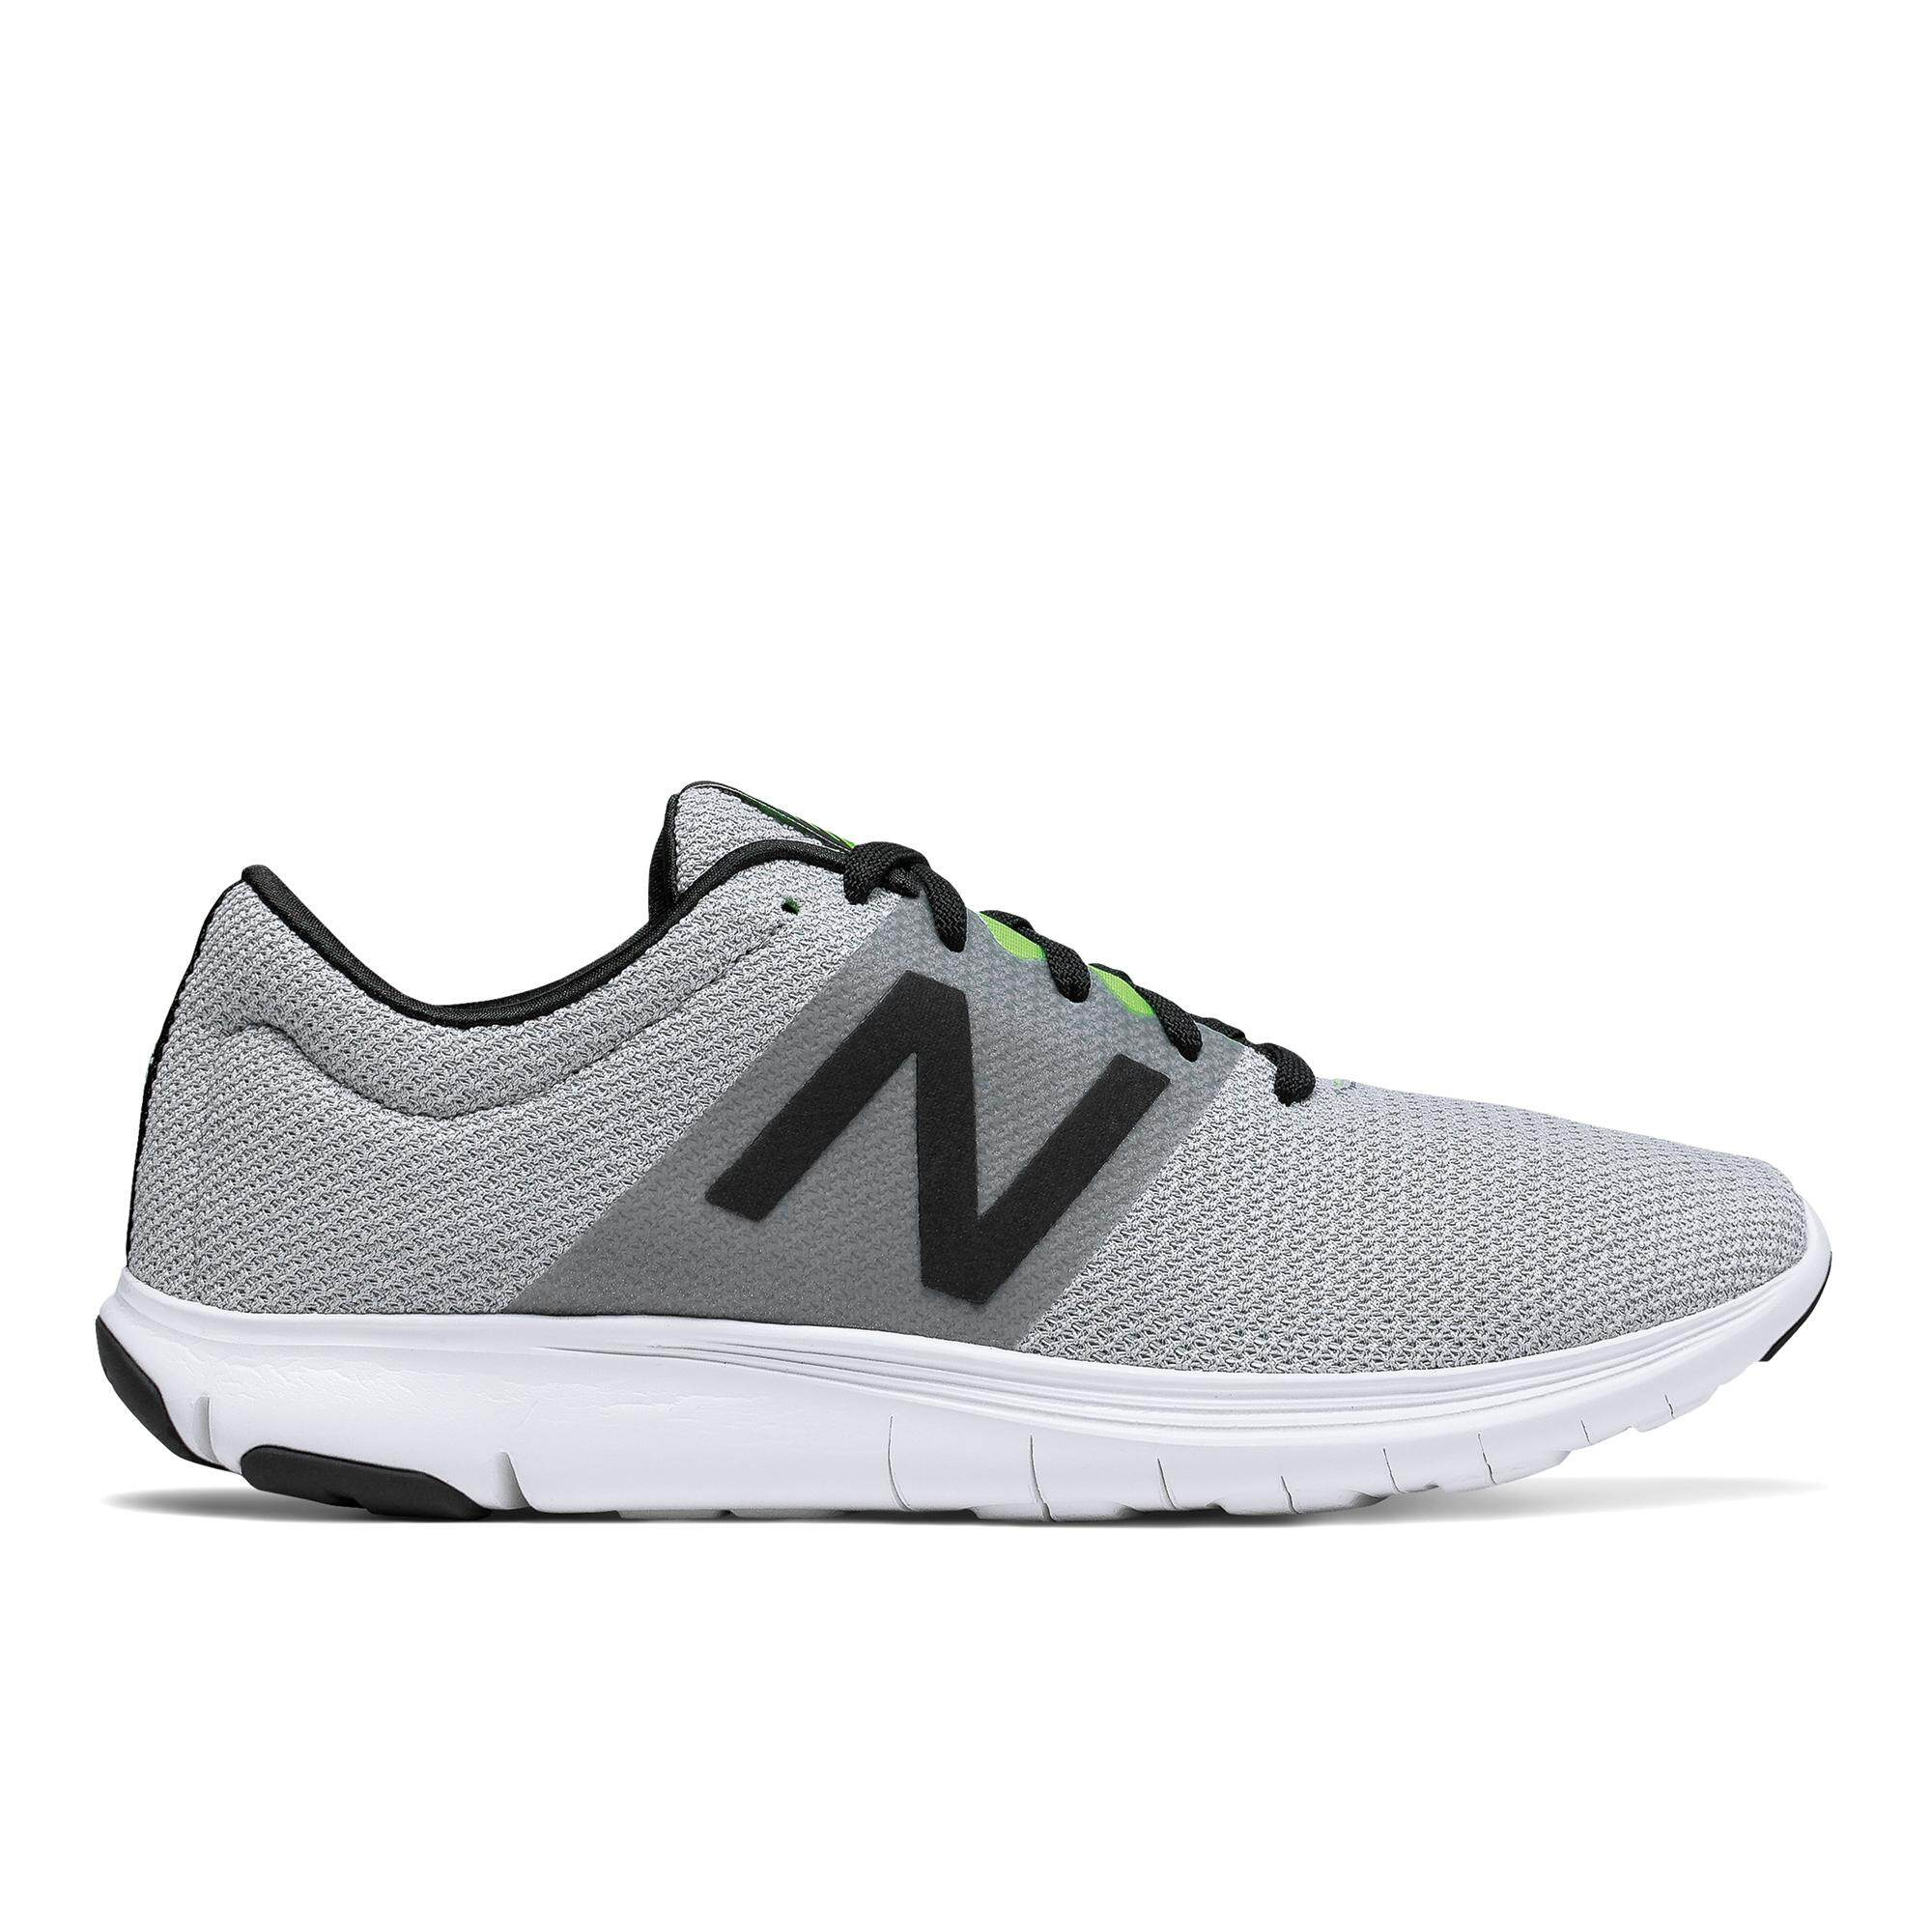 dbbcf37594 New Balance Official Store - Buy New Balance Official Store at Best ...